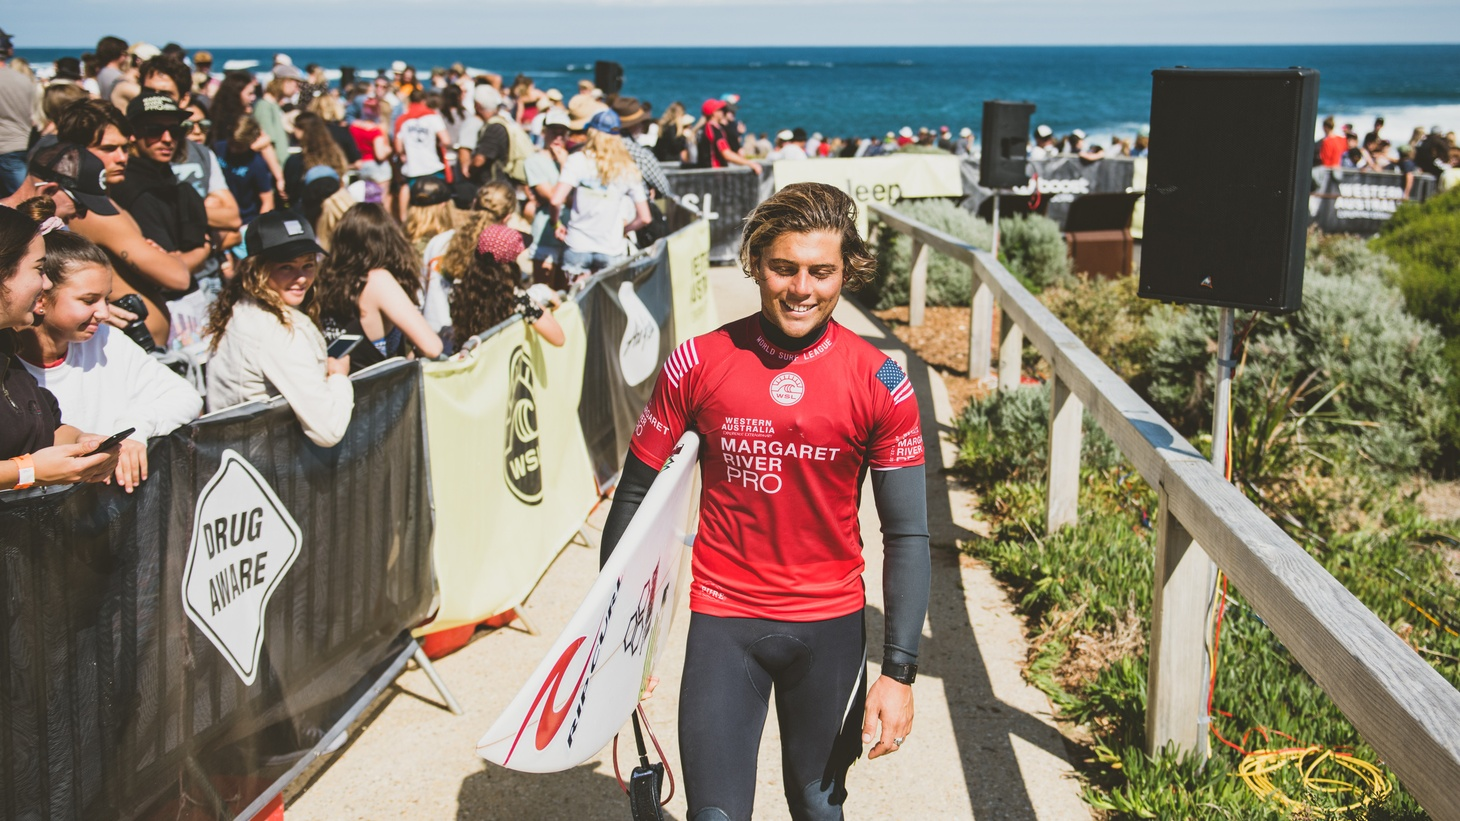 Conner Coffin is no longer a teenage surfer impressing the locals at Rincon Beach. He's now ranked as the 16th best surfer in the world, and the only Santa Barbara local in the men's World Surf League.